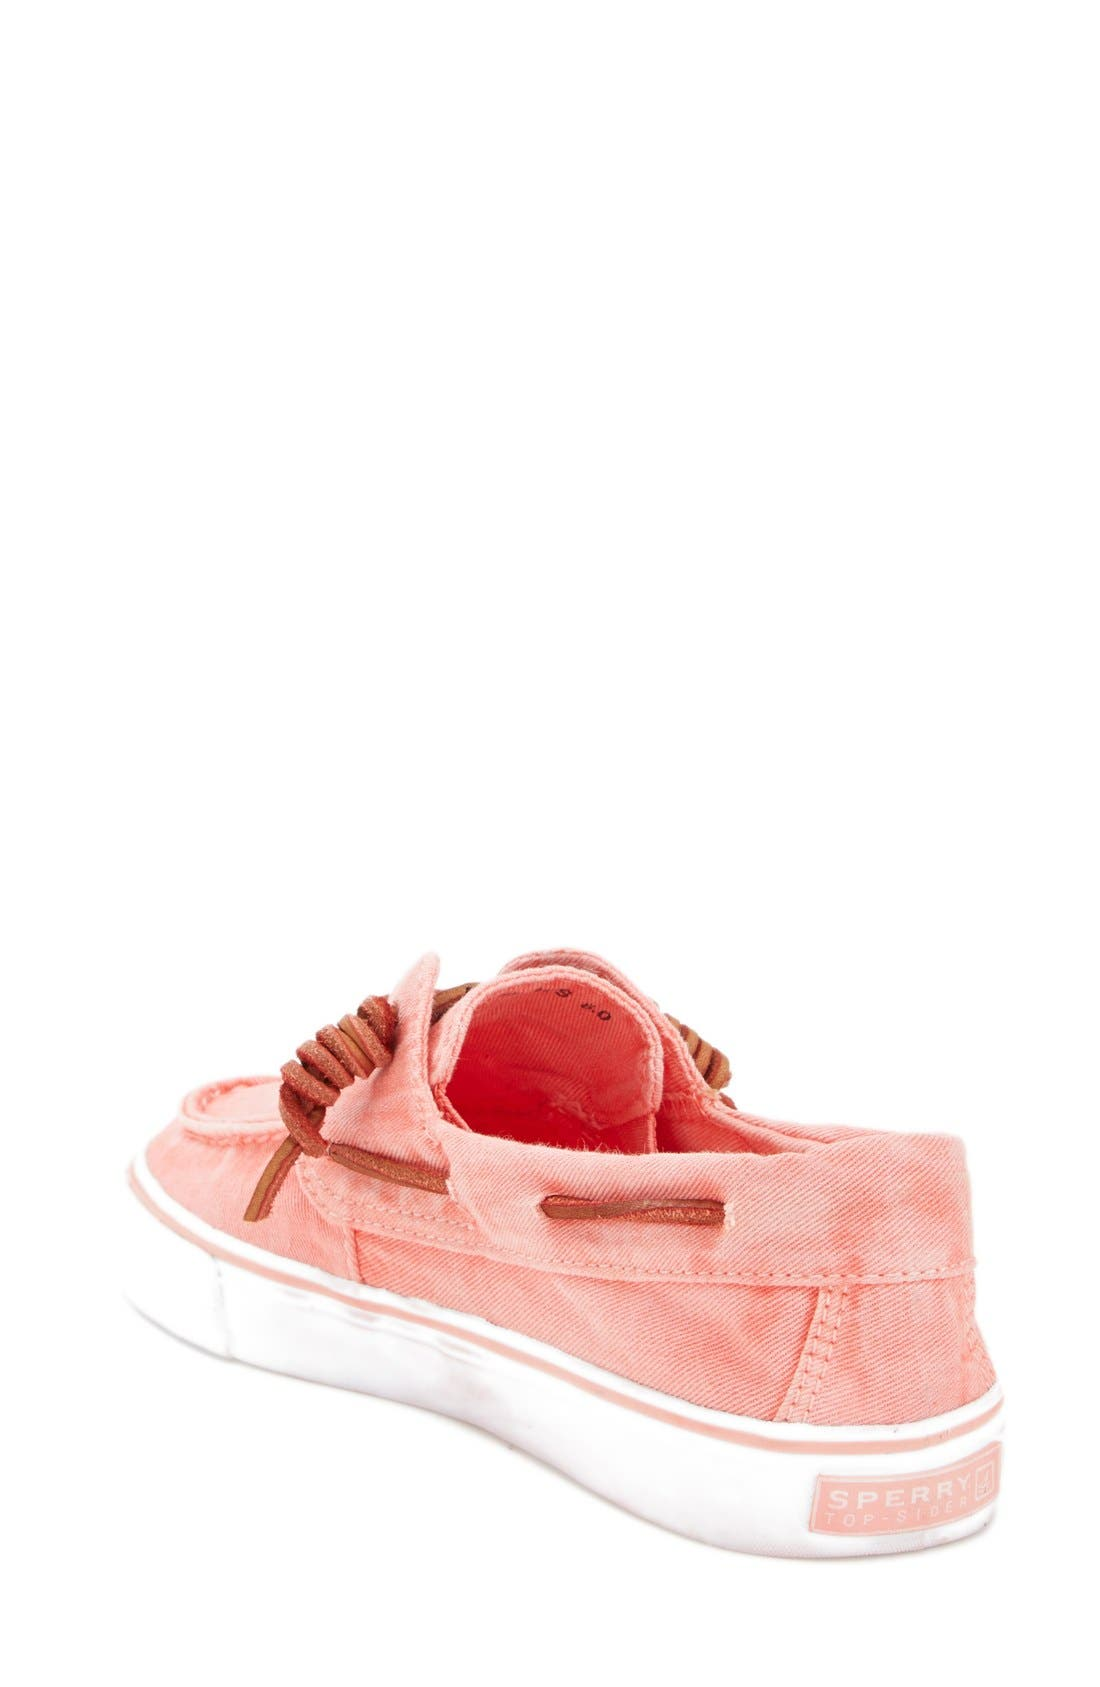 Top-Sider<sup>®</sup> 'Bahama' Sequined Boat Shoe,                             Alternate thumbnail 119, color,